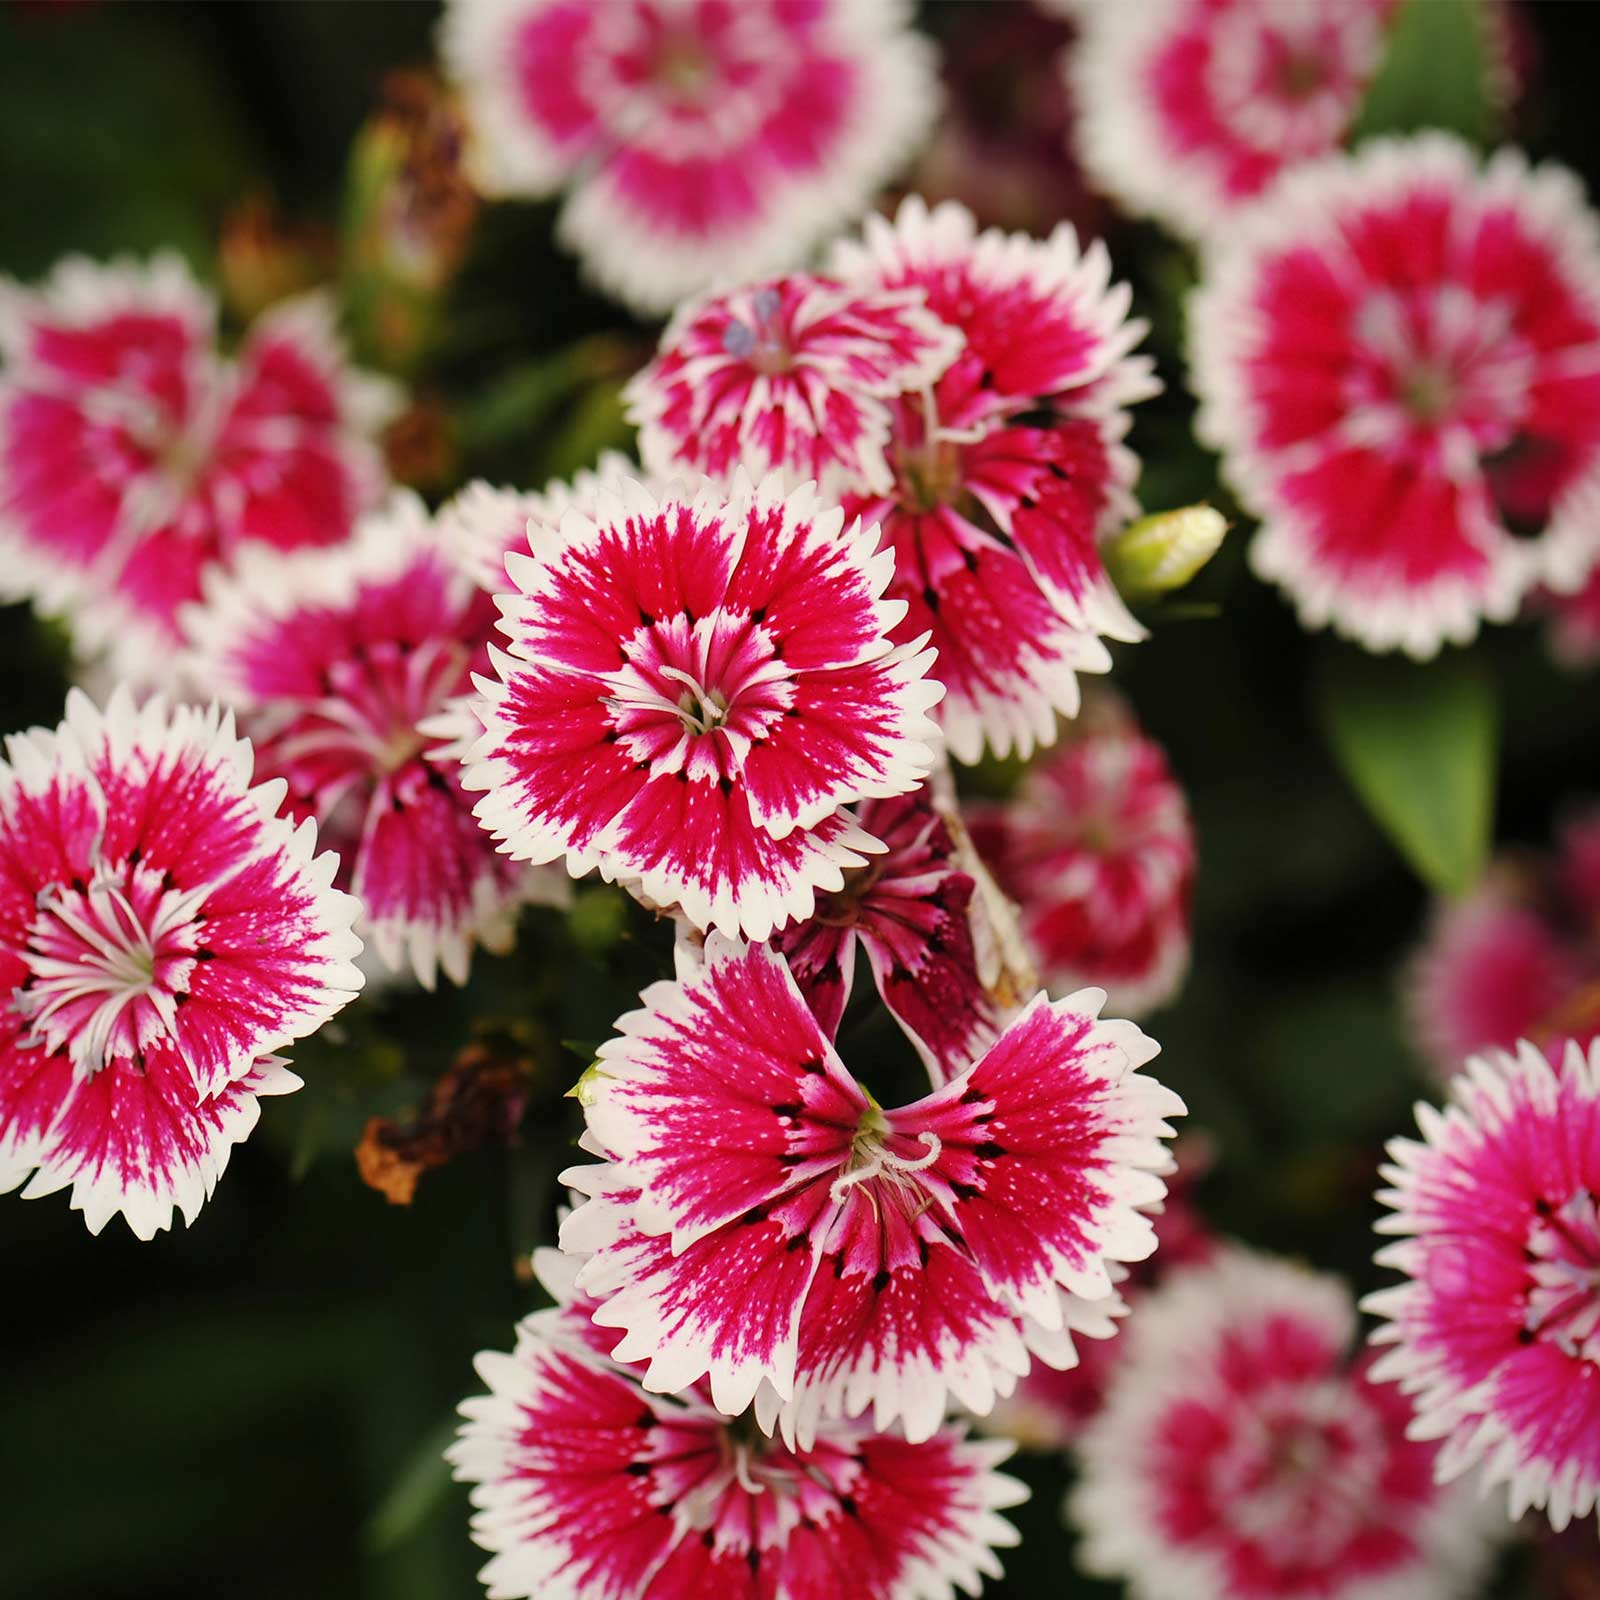 Dianthus Floral Lace Series Flower Seeds Picotee 100 Seeds